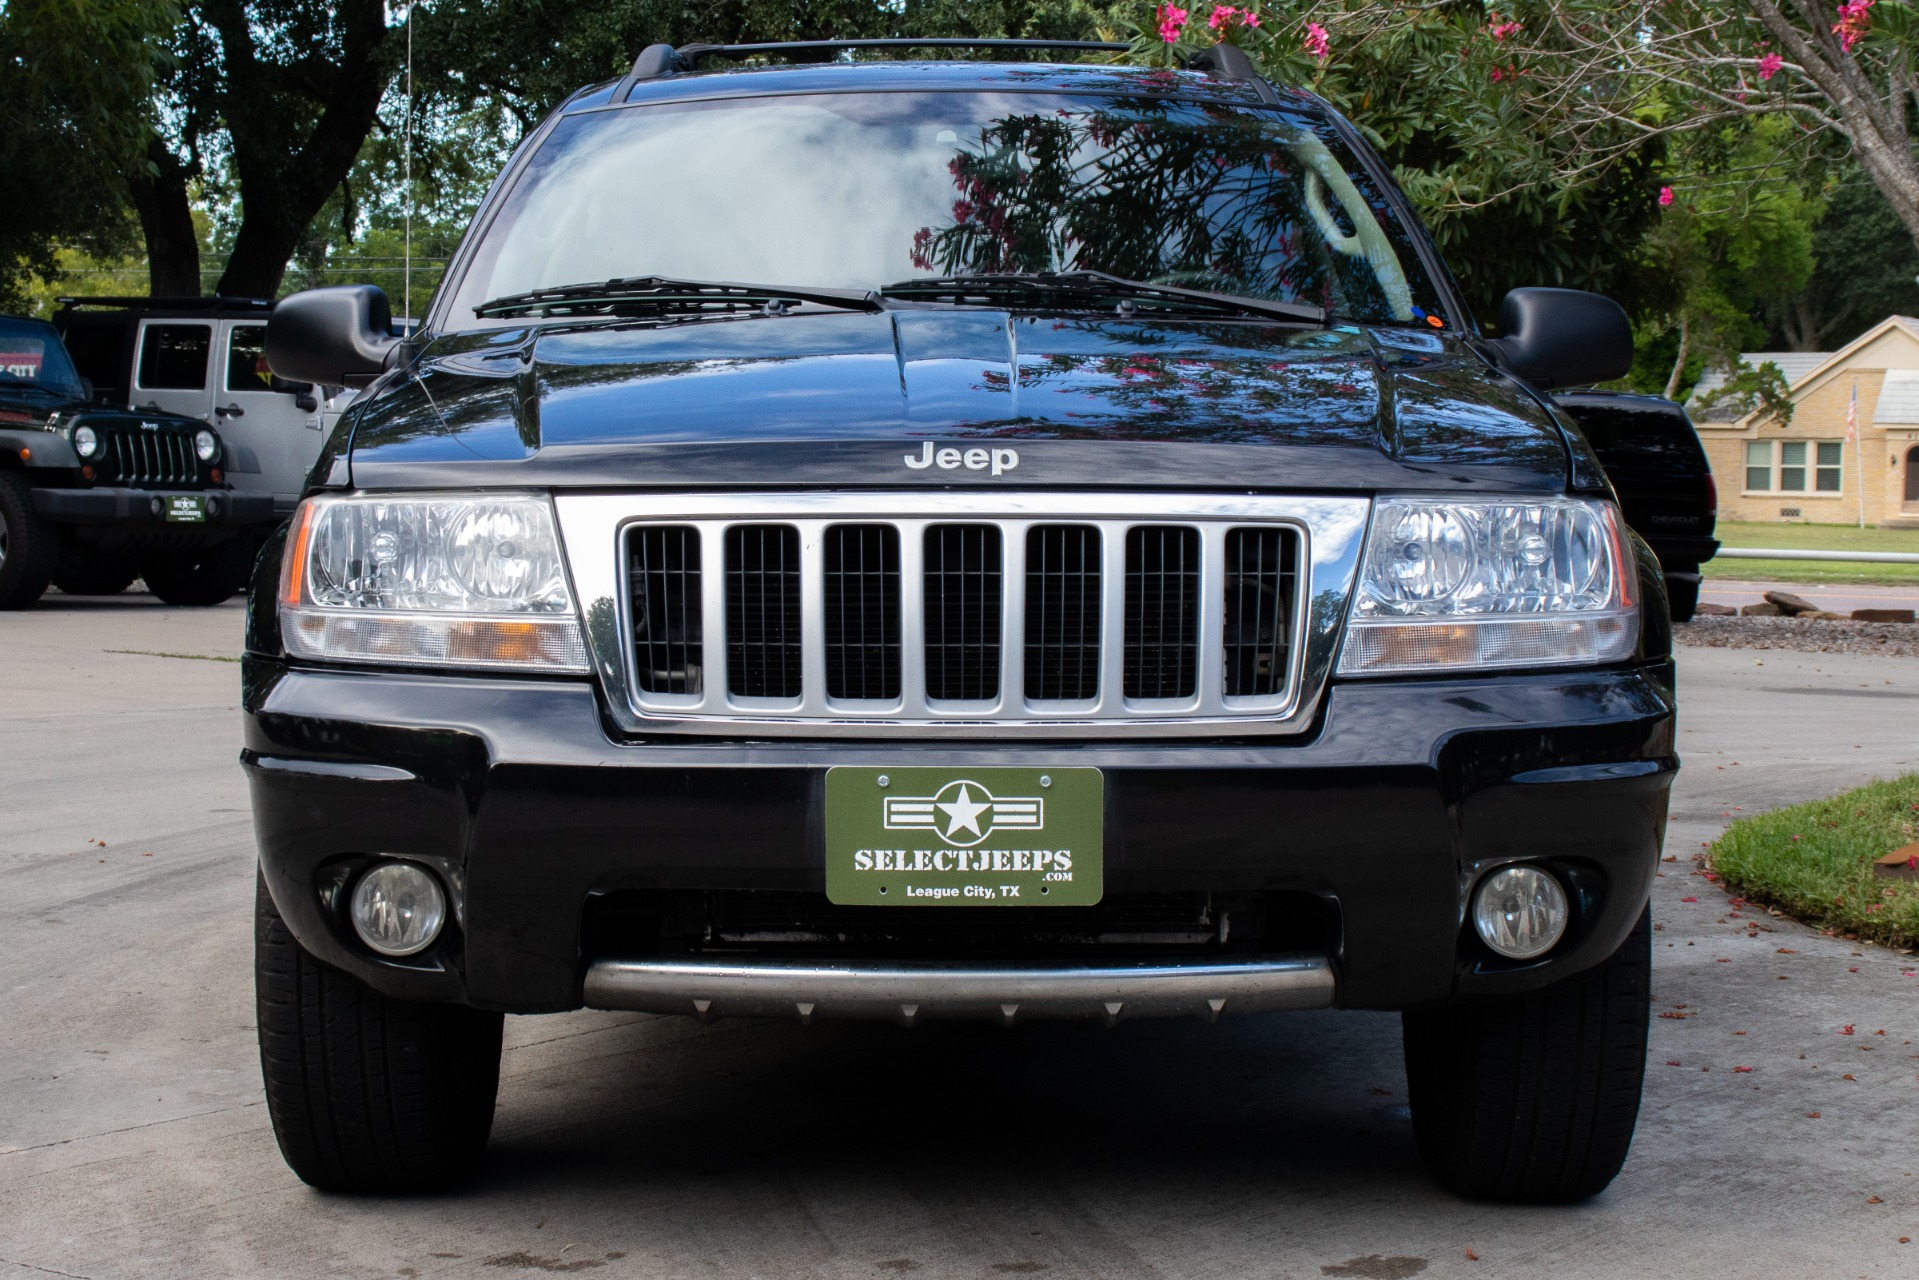 Used-2004-Jeep-Grand-Cherokee-4dr-Limited